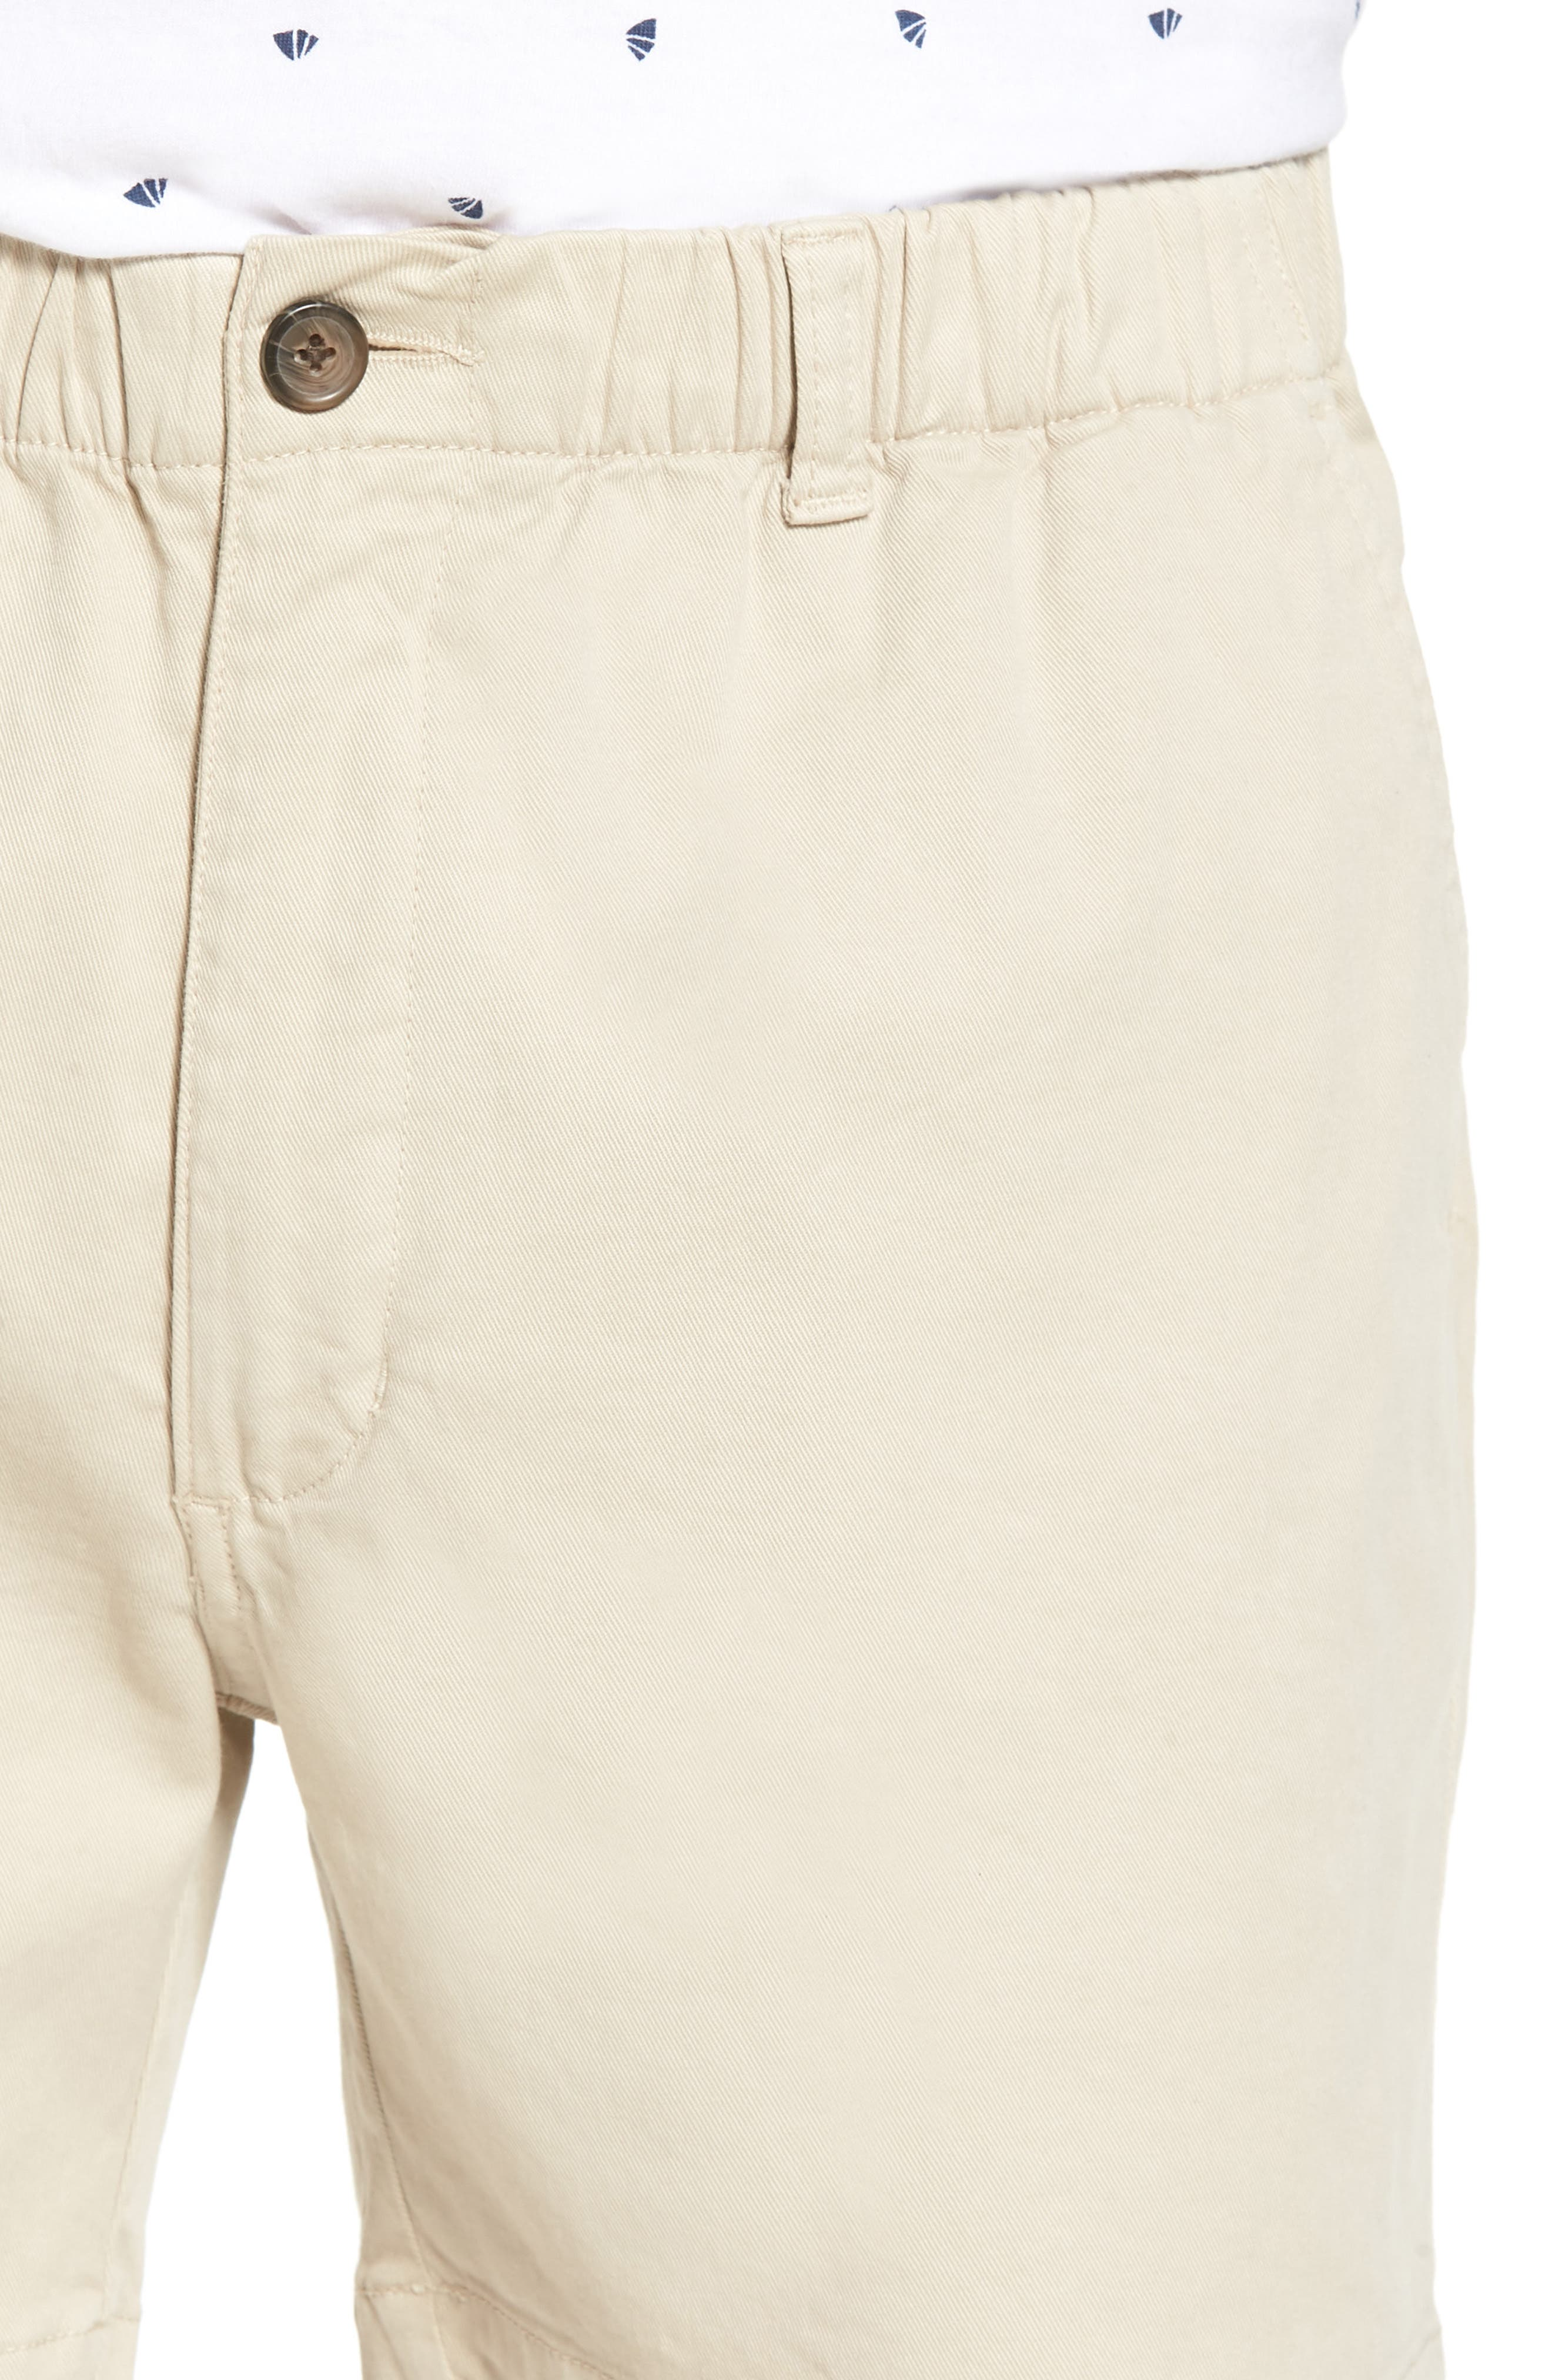 Snappers Elastic Waist 5.5 Inch Stretch Shorts,                             Alternate thumbnail 4, color,                             STONE